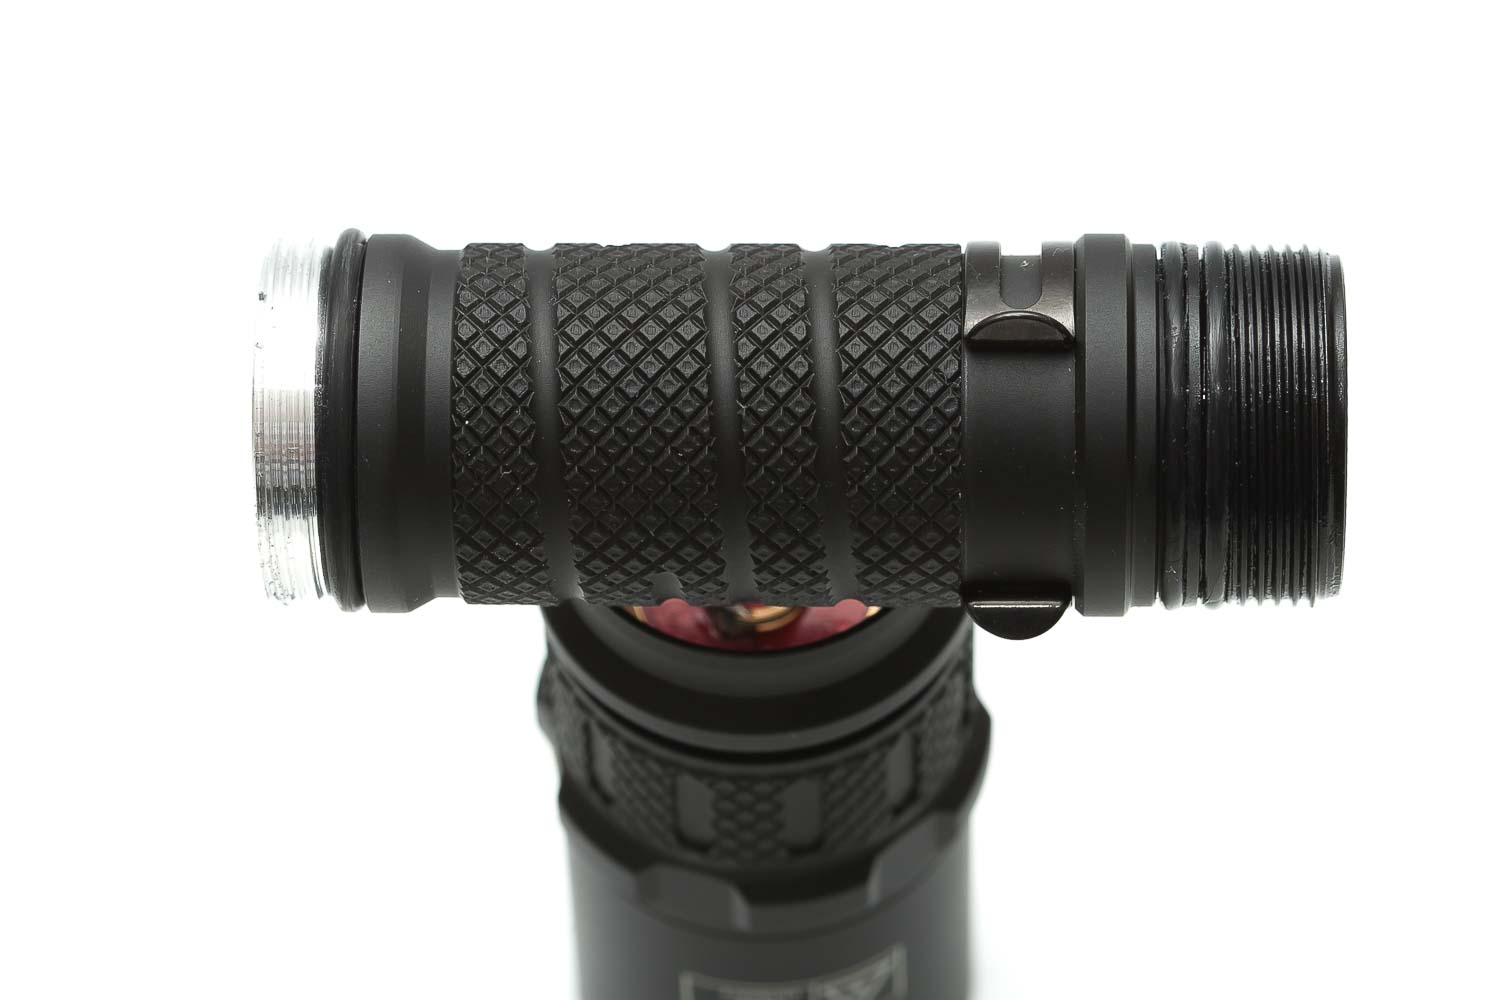 close up of flashlight knurling